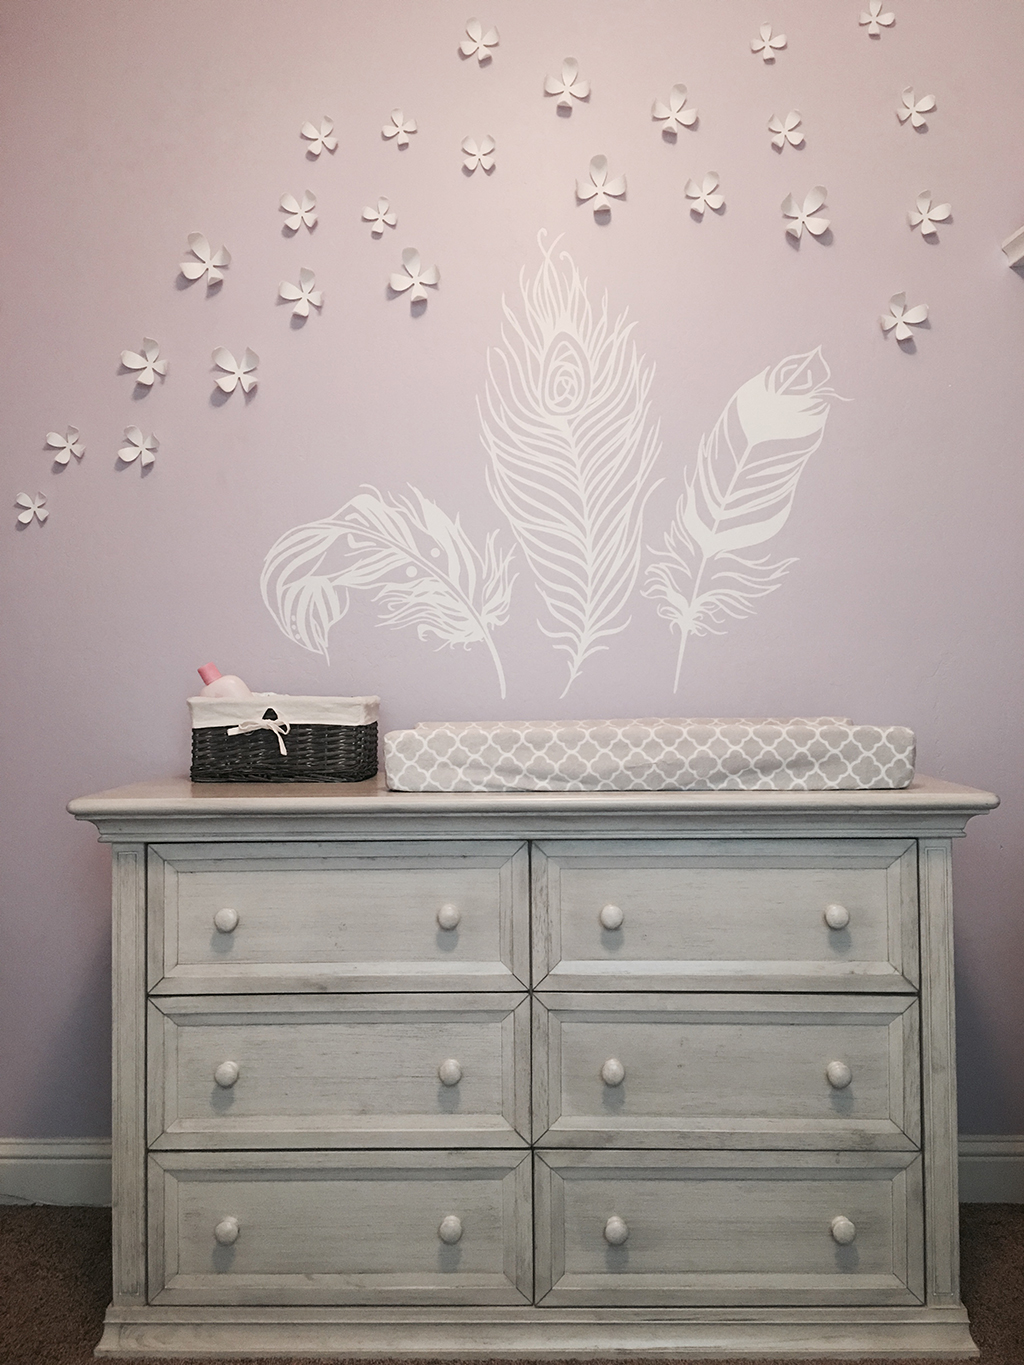 Evolur Napoli Dresser - Ashley Baby Nursery